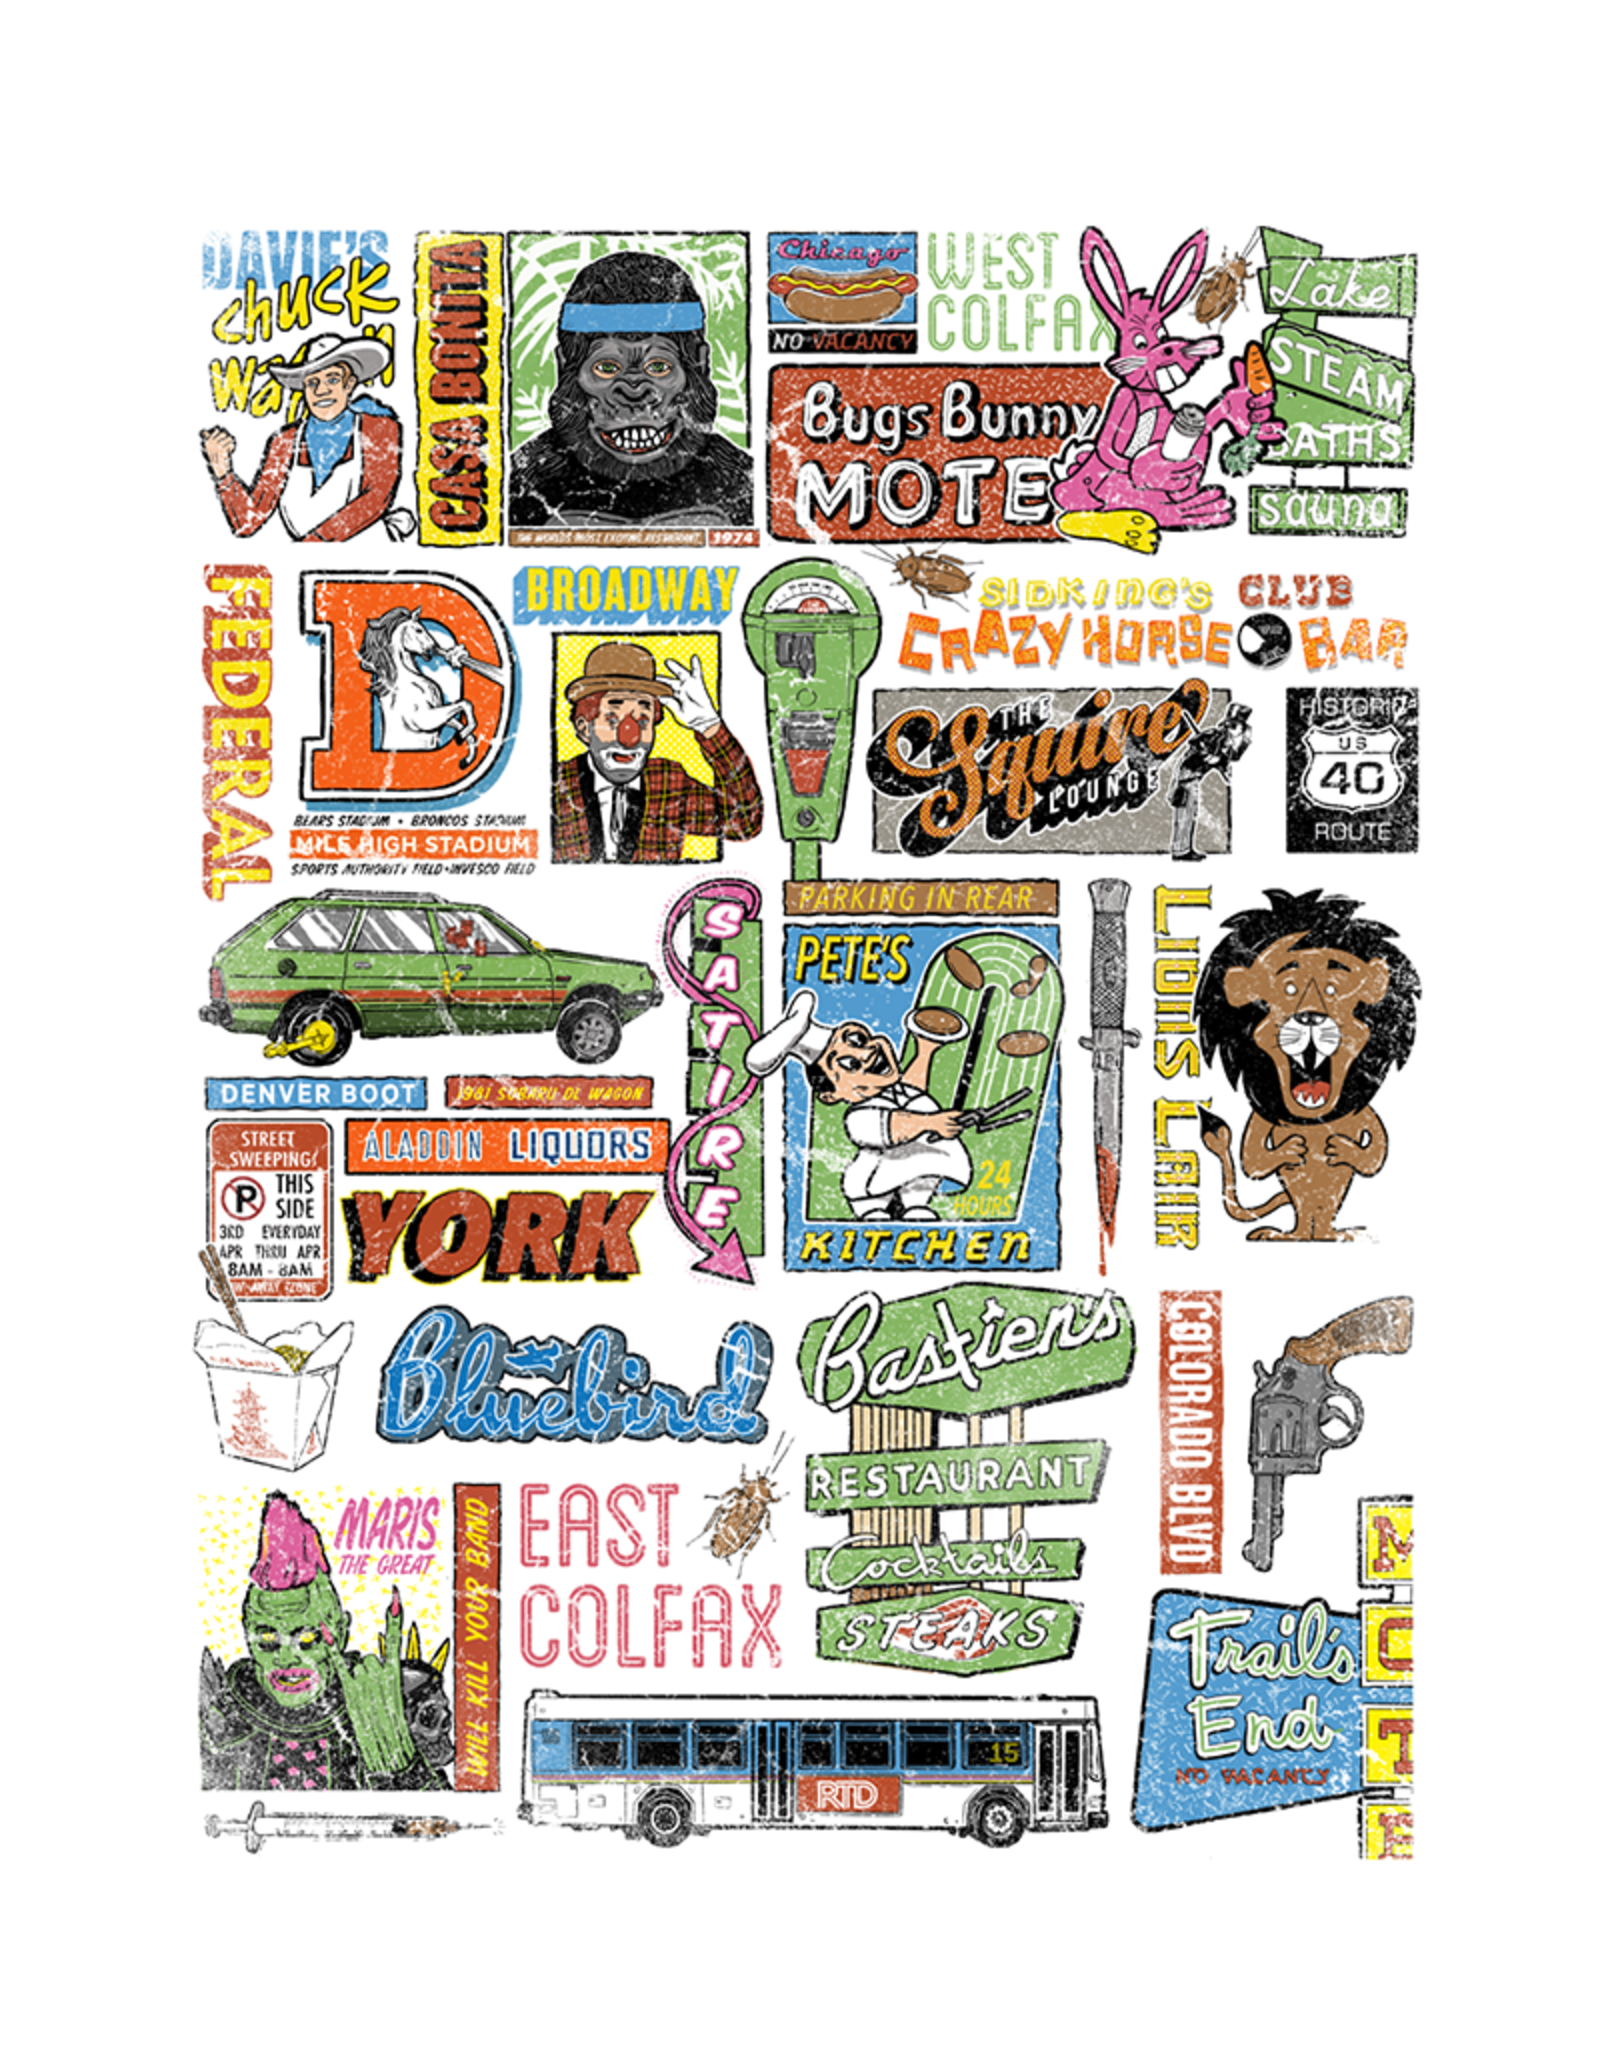 3 Color !! 18 x 24 Just the Fax Colfax Poster by Chris Huth